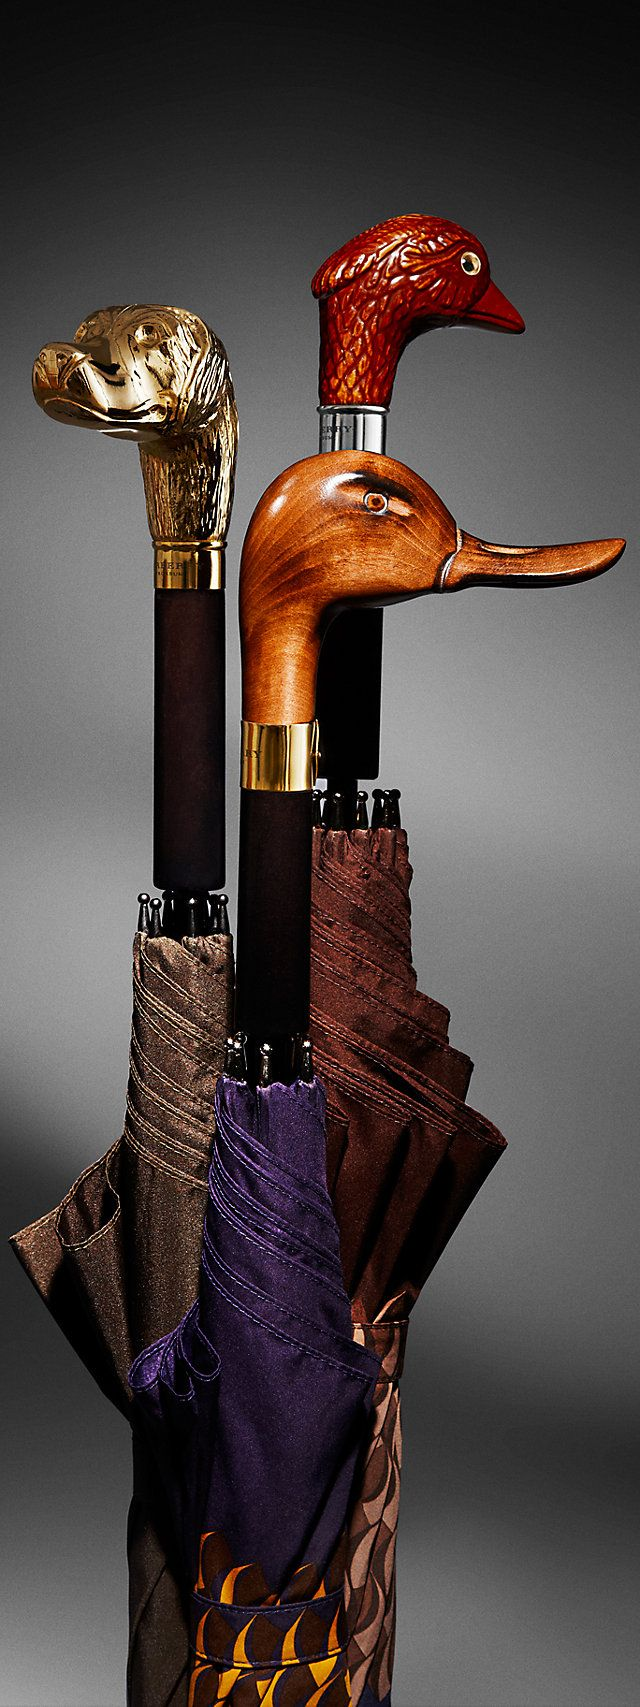 Burberry umbrellas...notice the flow of the grain on the duck's head. Gorgeous...  repinned by www.smg-treppen.de